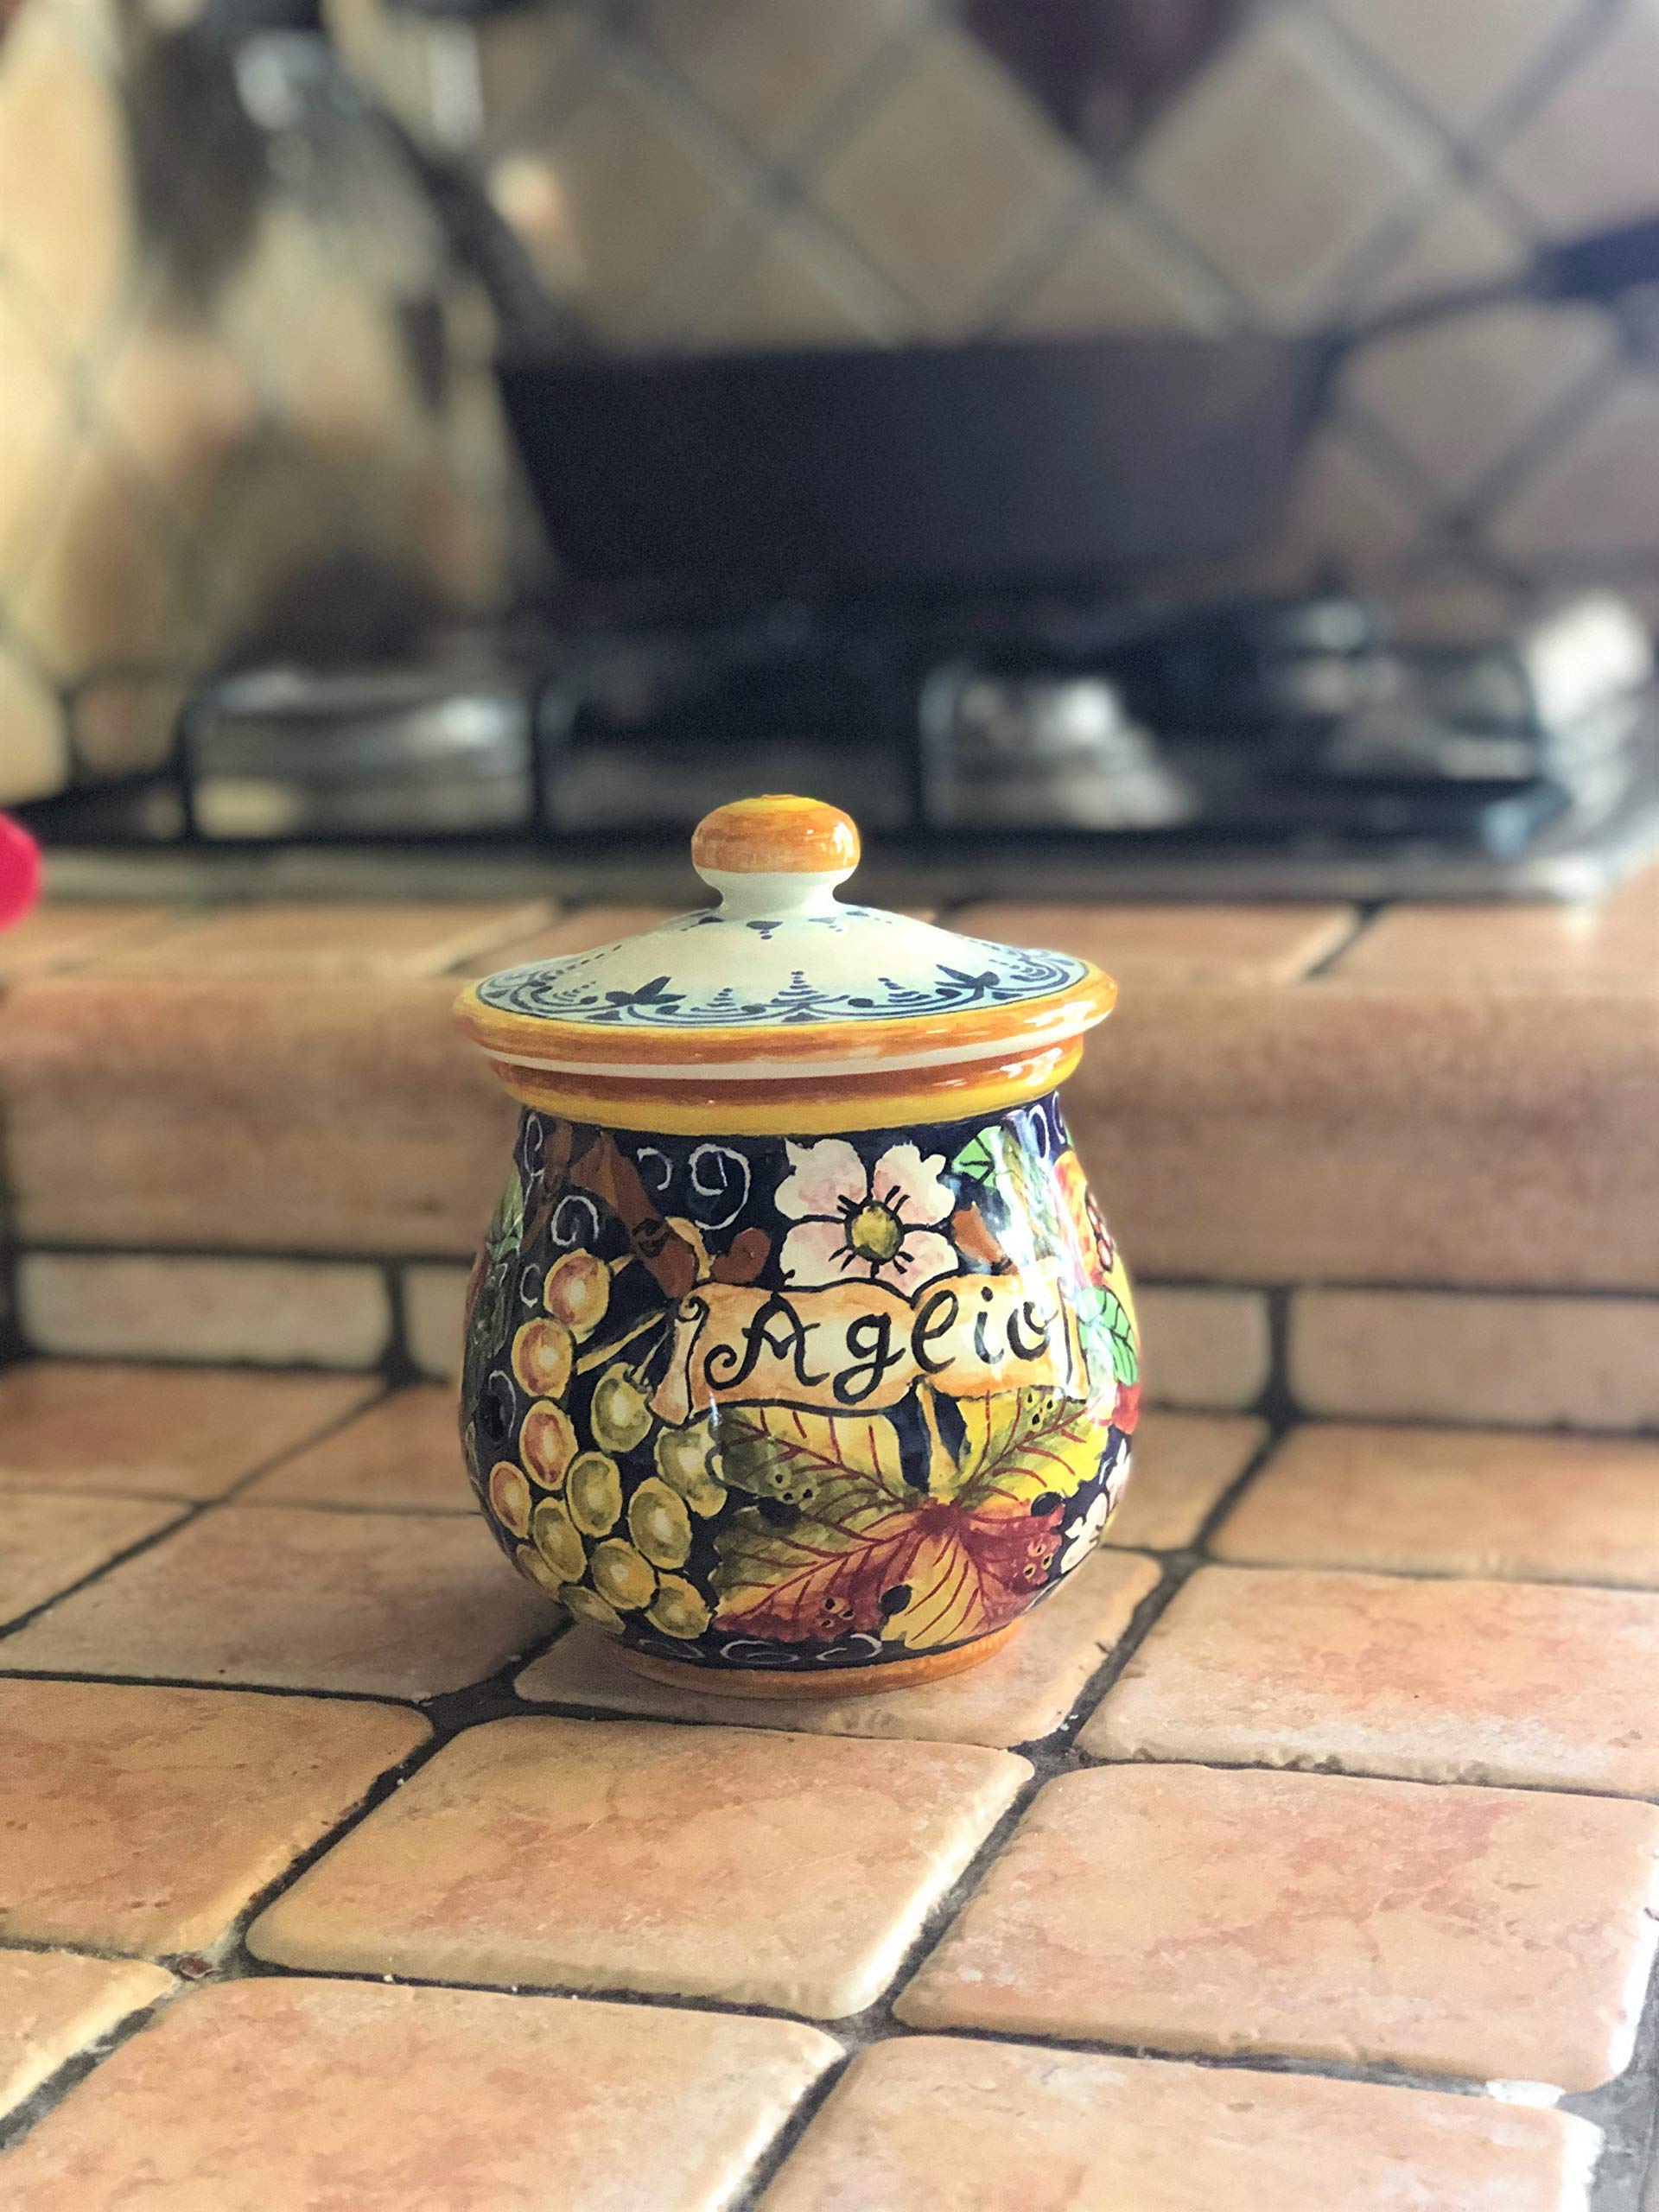 CERAMICHE D'ARTE PARRINI- Italian Ceramic Garlic Brings Jar Holder Hand Painted Made in ITALY Decorated Grape Tuscan Art Pottery by CERAMICHE D'ARTE PARRINI since 1979 (Image #3)